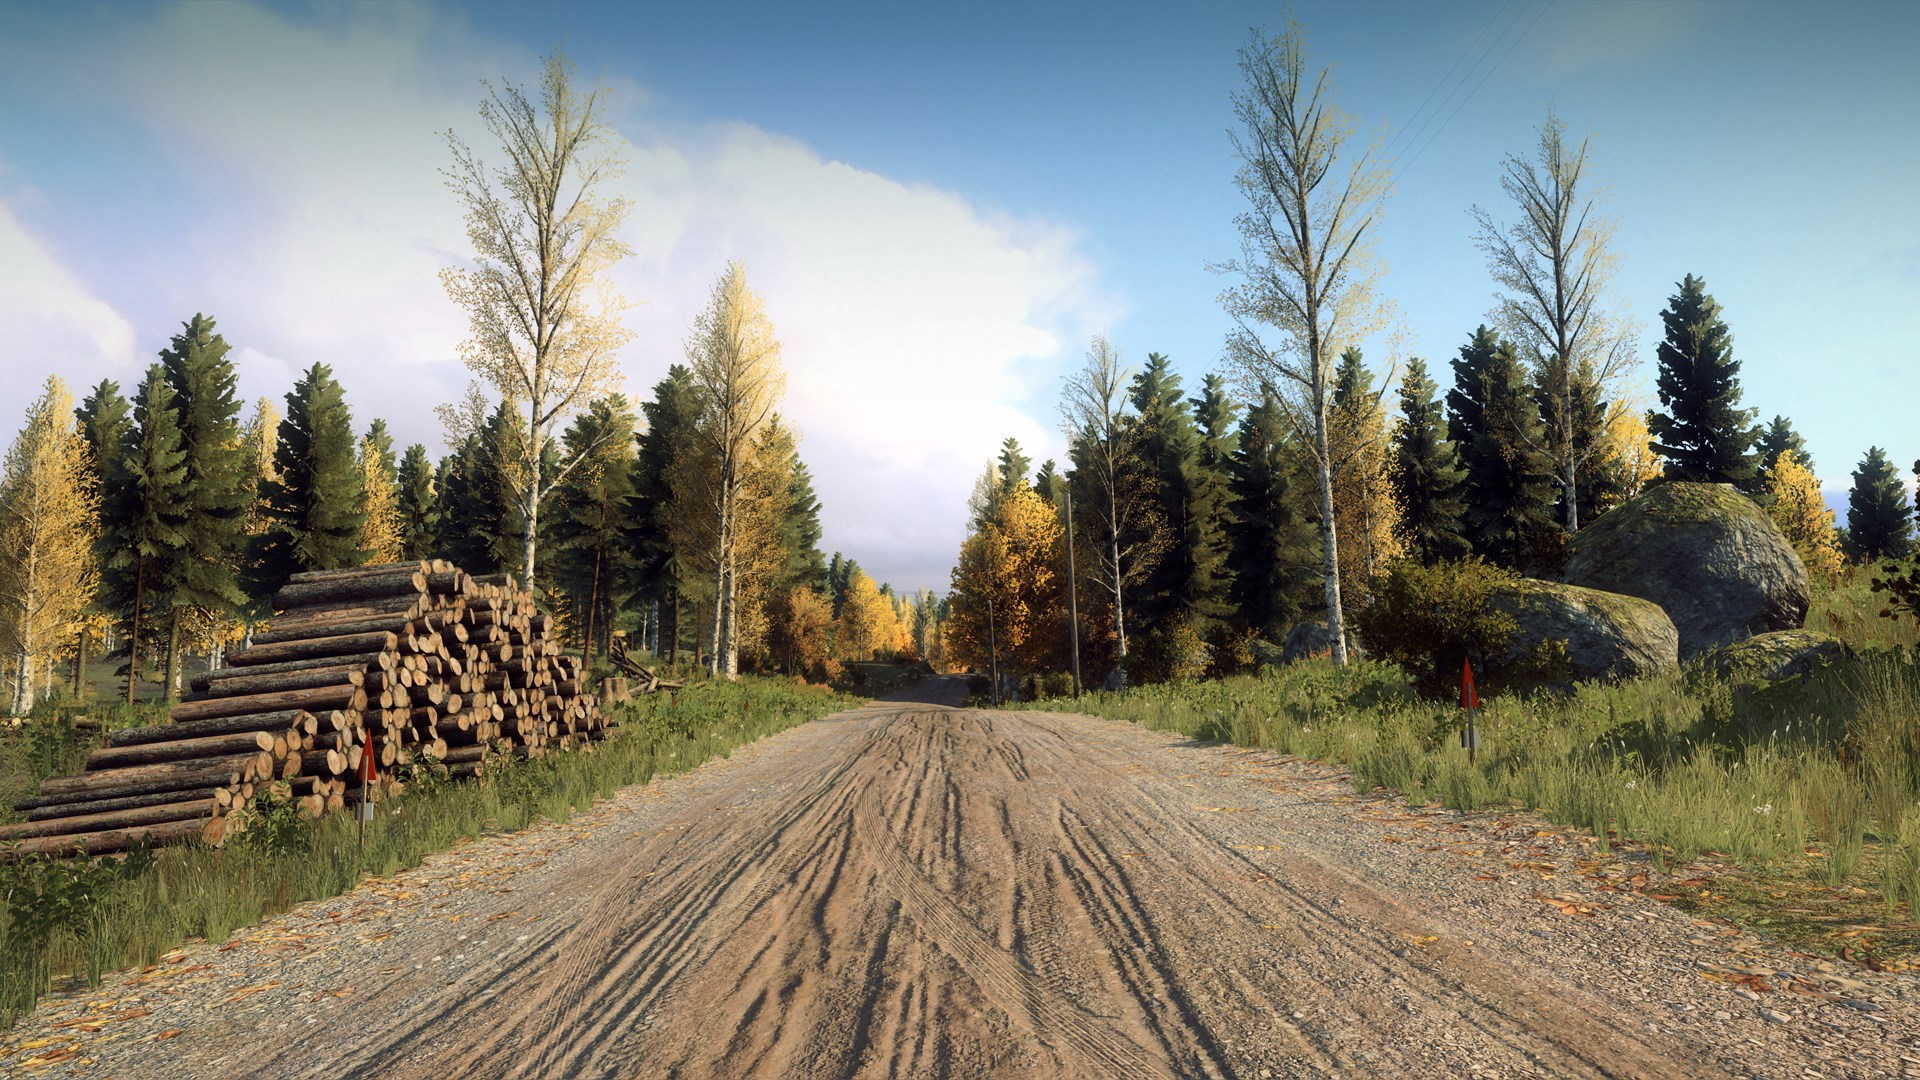 WS - Finland (Rally Location)